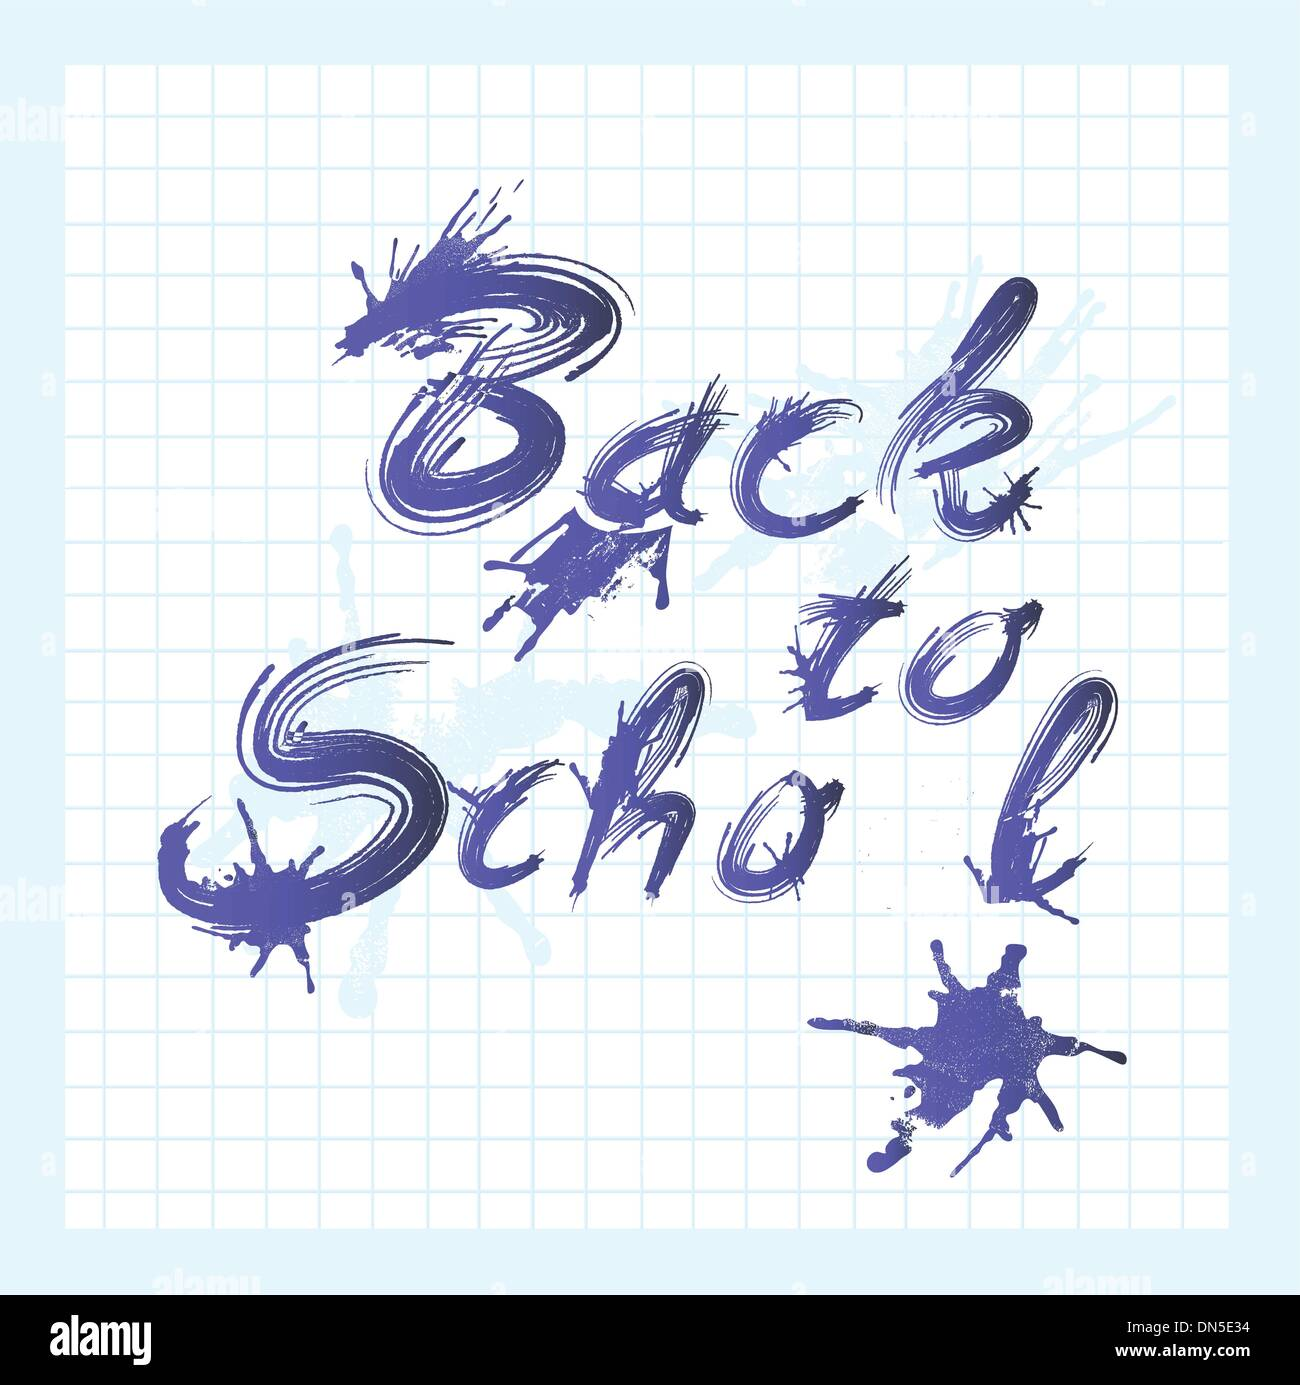 Back to school text with ink stains. - Stock Image